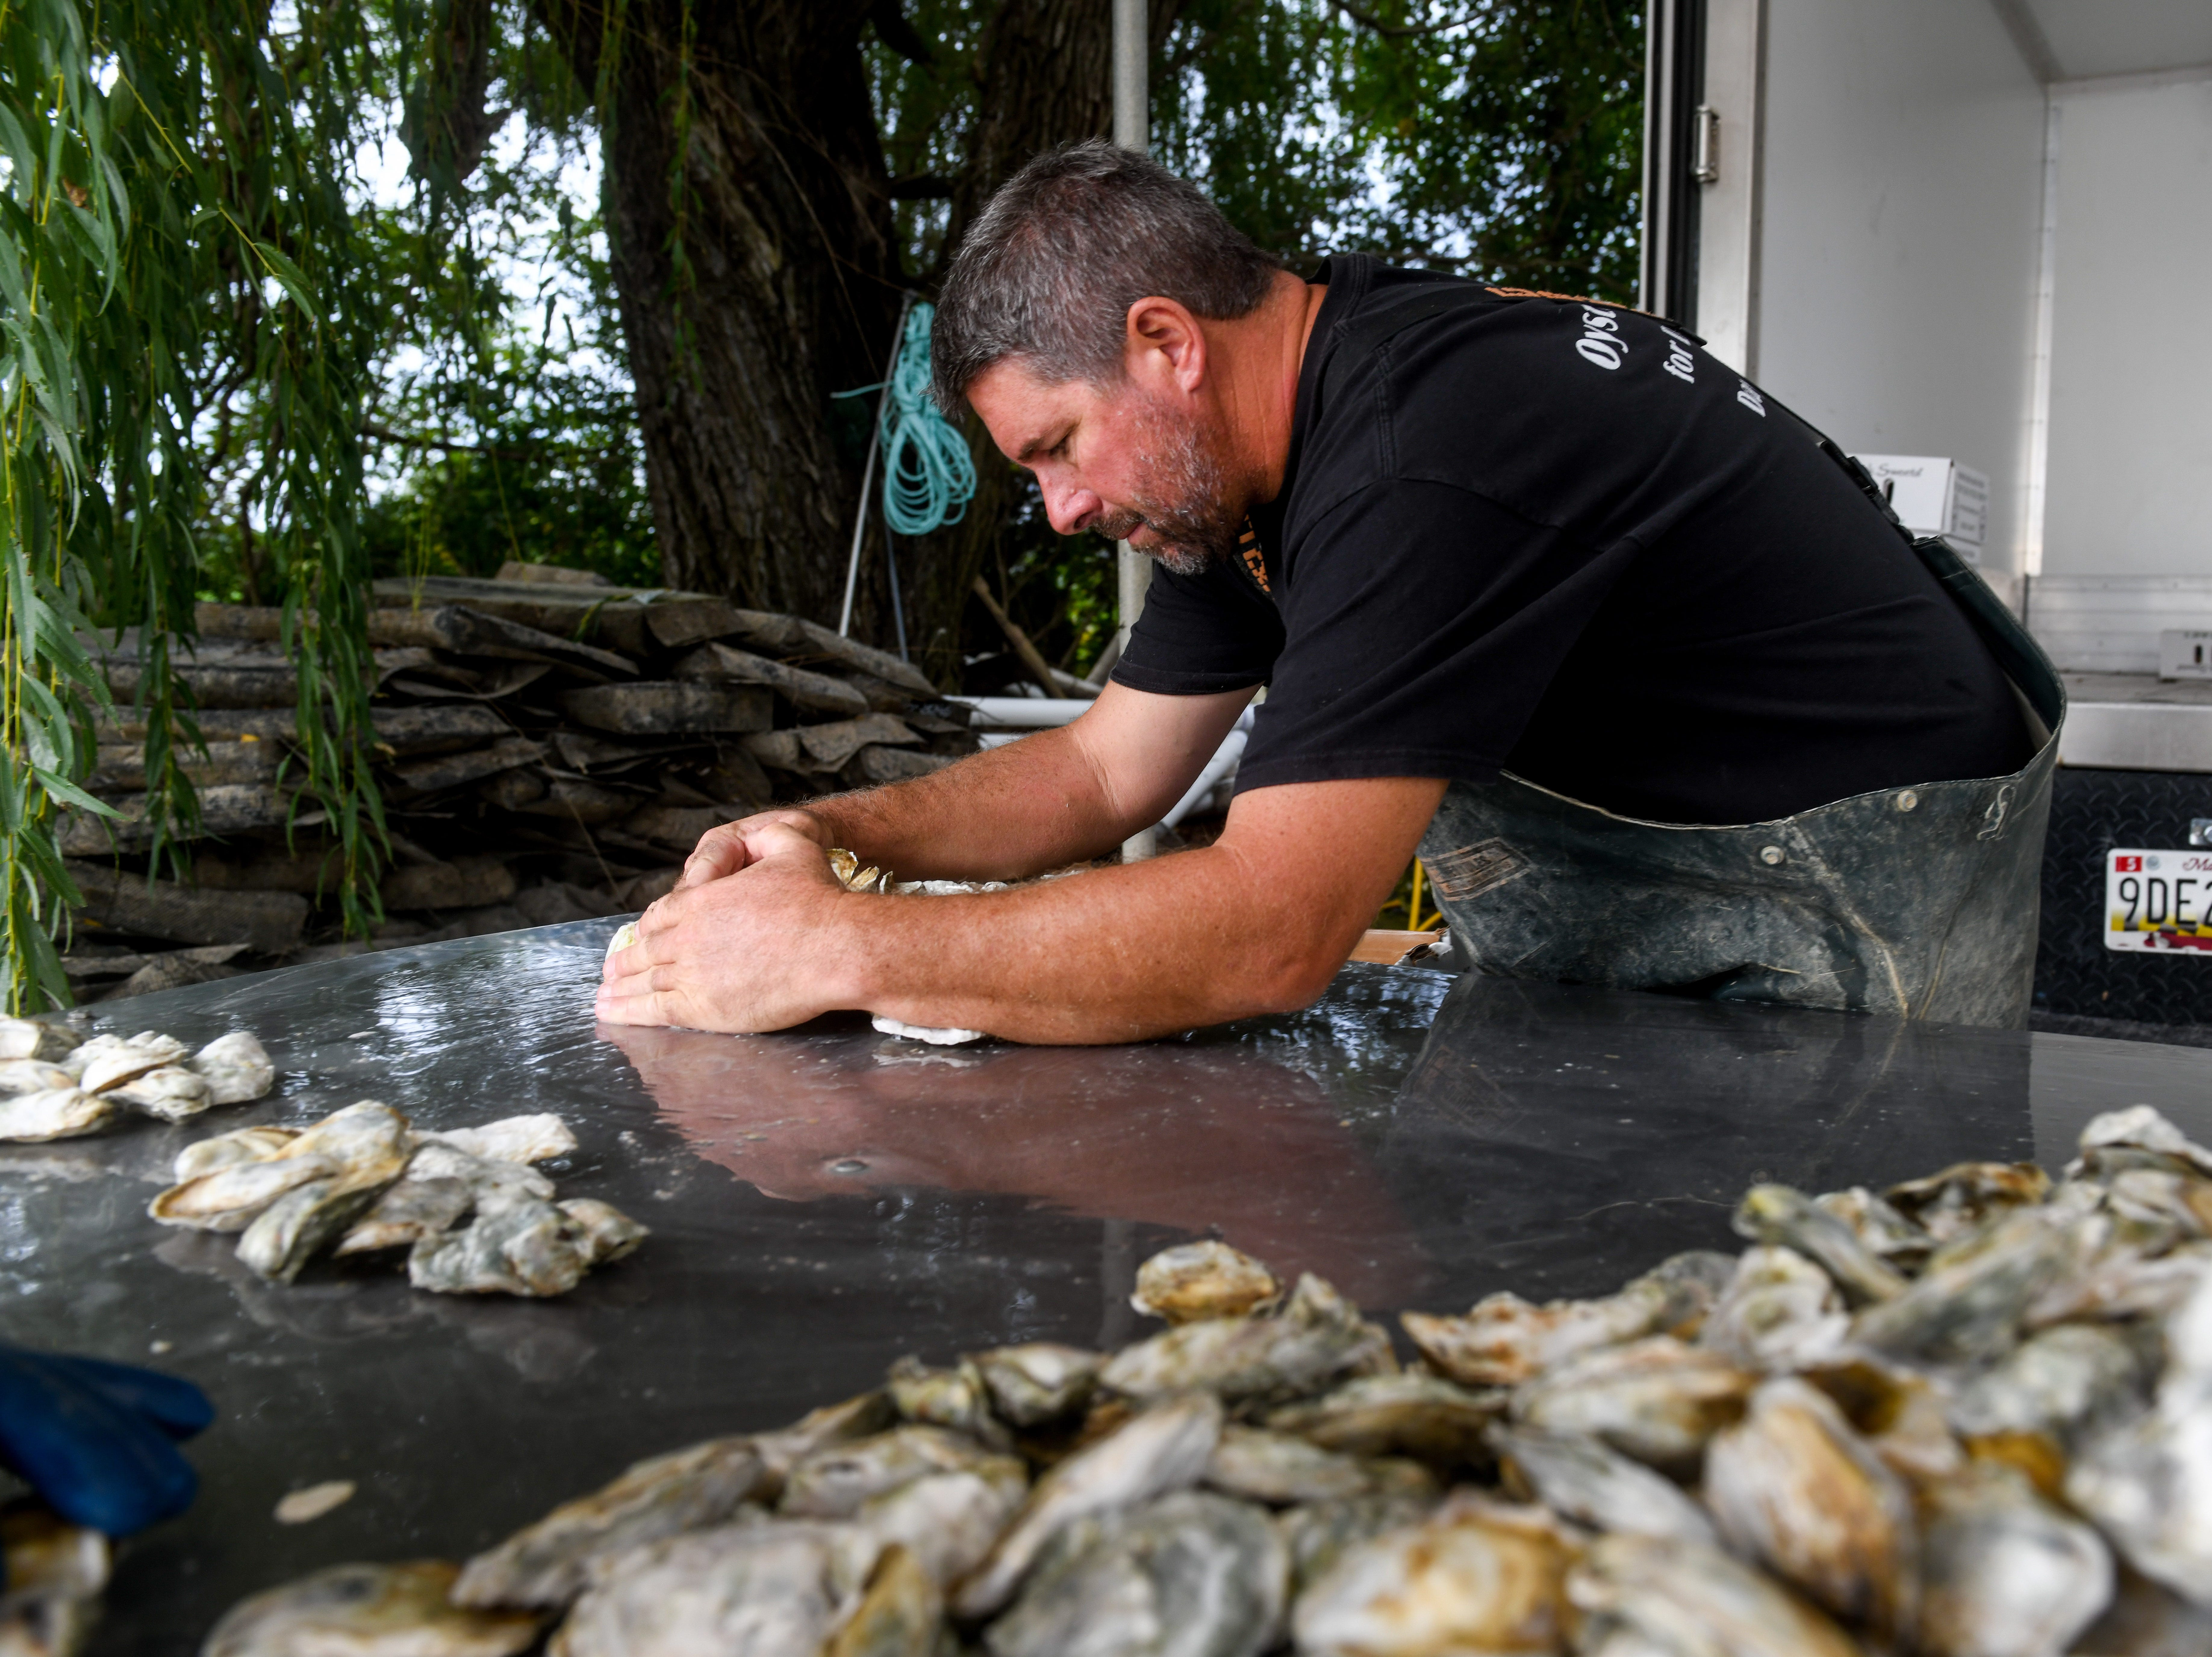 Choptank Oyster Company founder Kevin McClarren packages oysters on the shore of the Chesapeake Bay near Cambridge on Thursday, Sept 27, 2018.